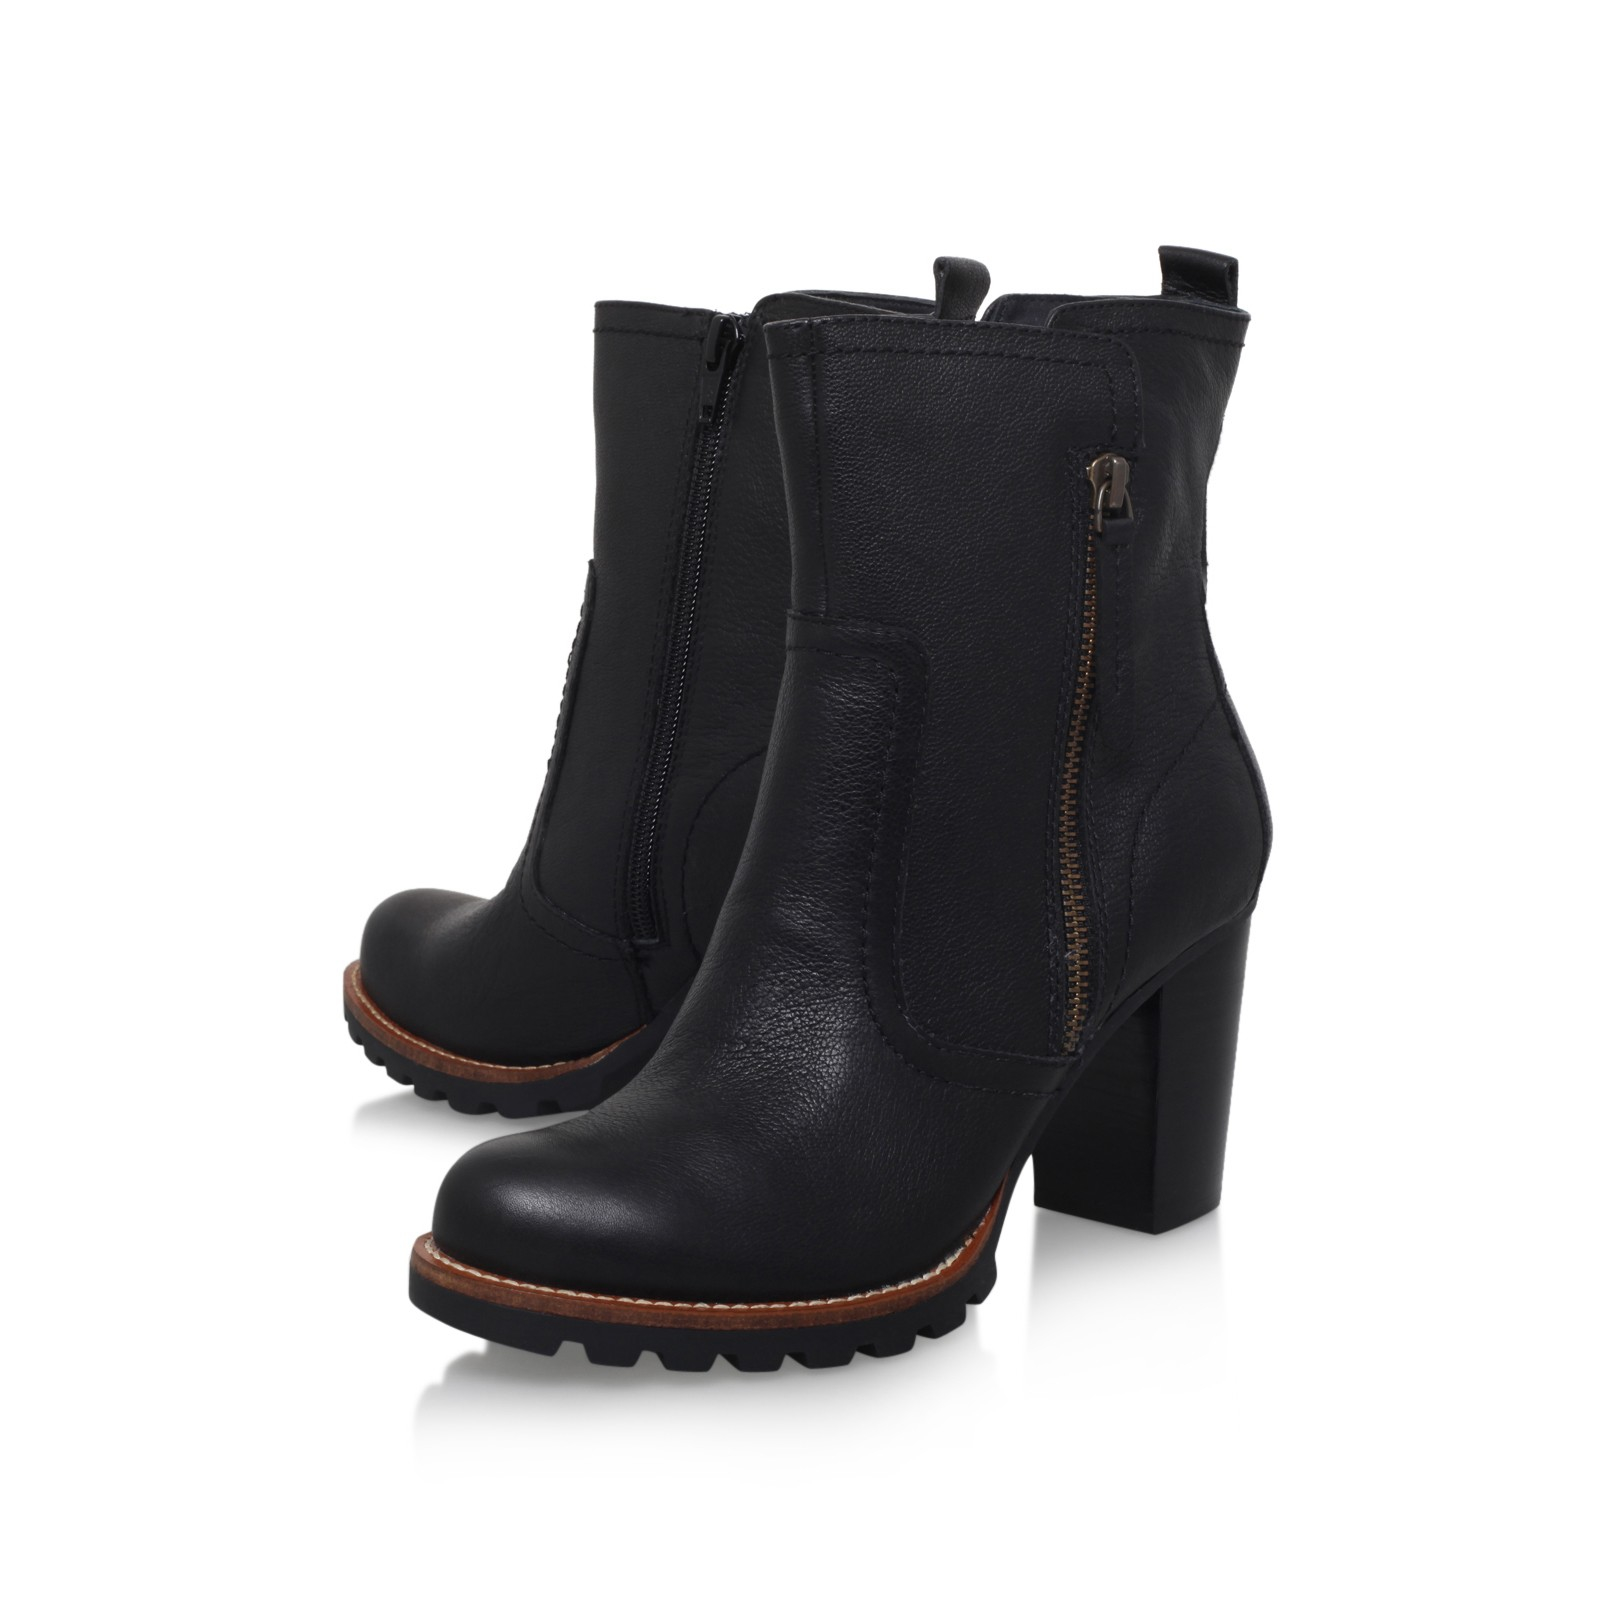 3ba56eb3814e47 Tommy Hilfiger Isabella 5a Ankle Boots in Black - Lyst